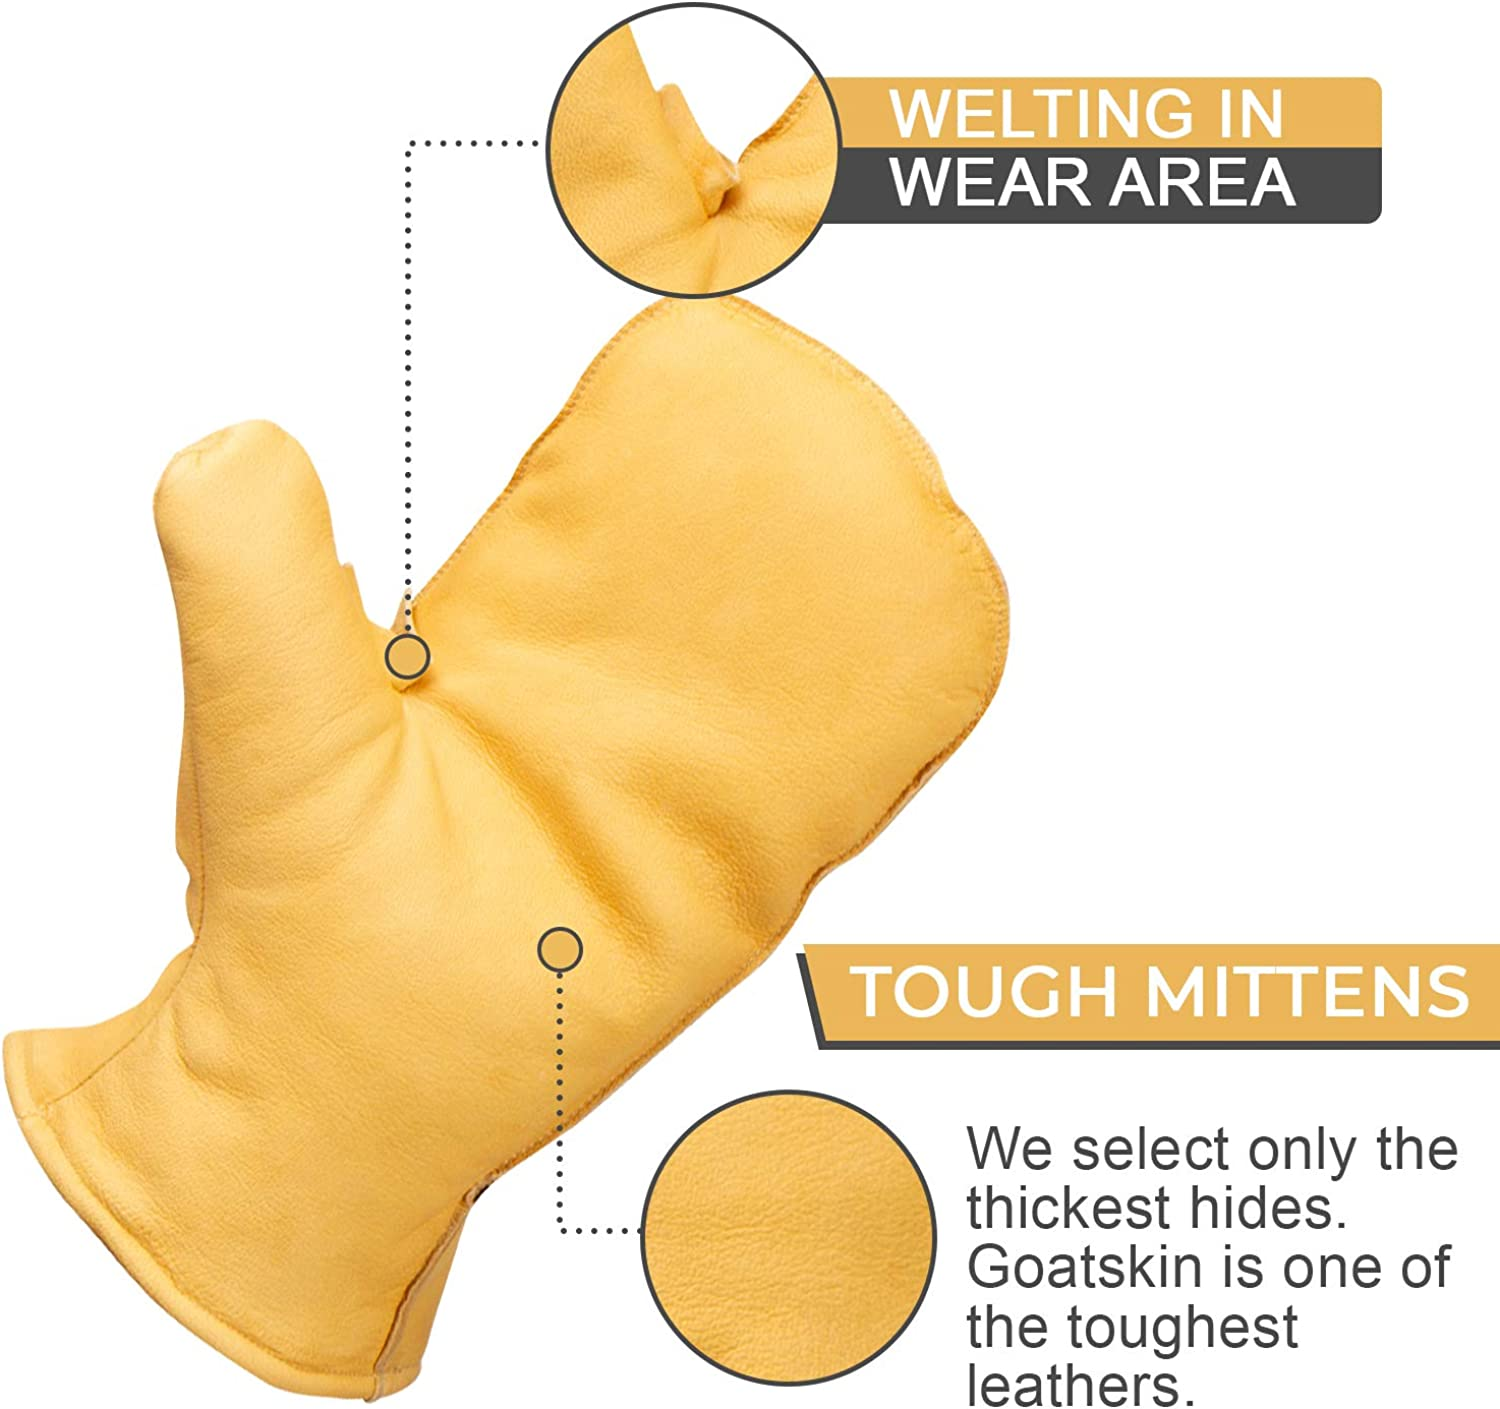 Leather Mittens Sherpa Fleece Lined Mens Winter Chopper Mitt in Small,Med,Large,XL, or XXL